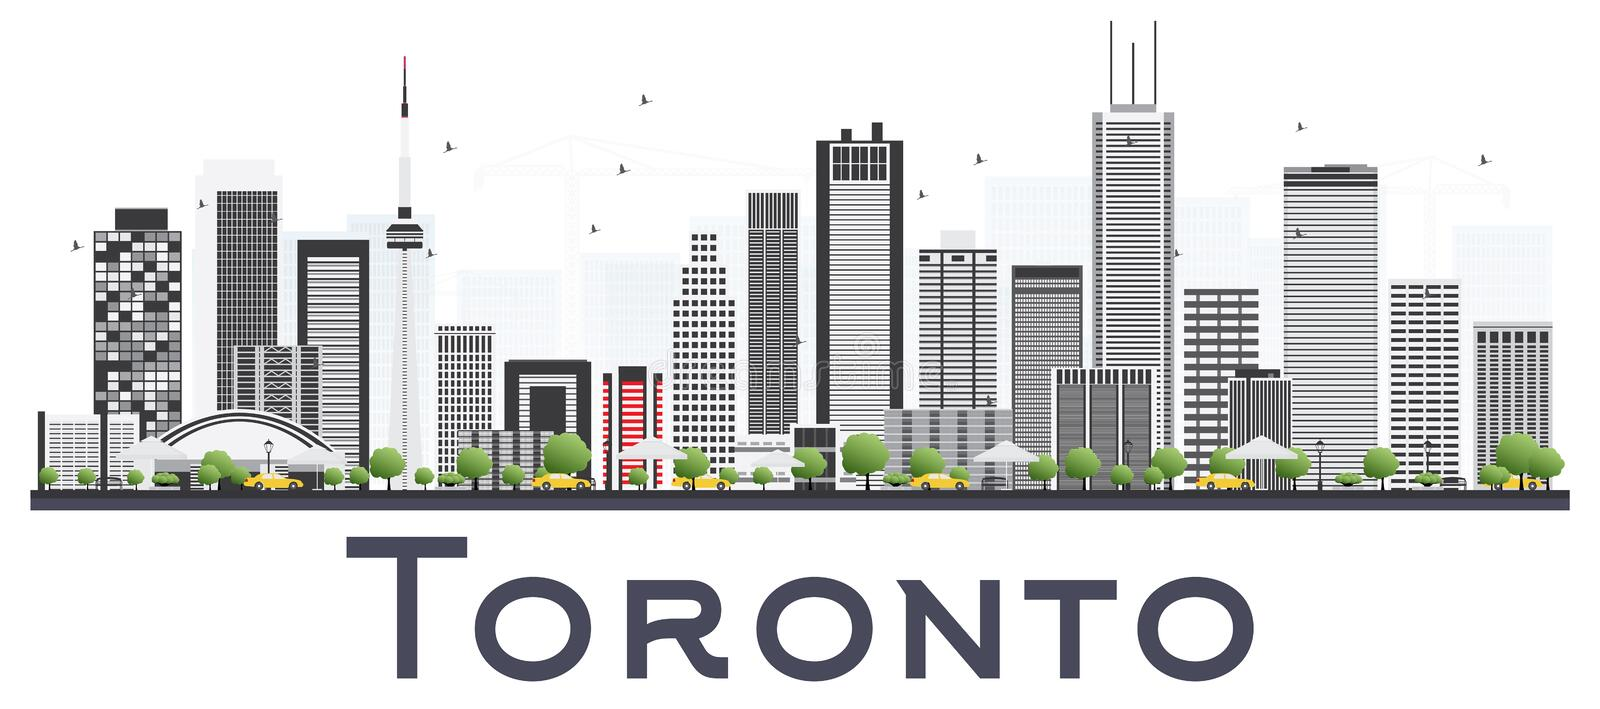 Toronto Canada City Skyline with Color Buildings Isolated on White Background. Vector Illustration. Business Travel and Tourism Concept with Modern stock illustration